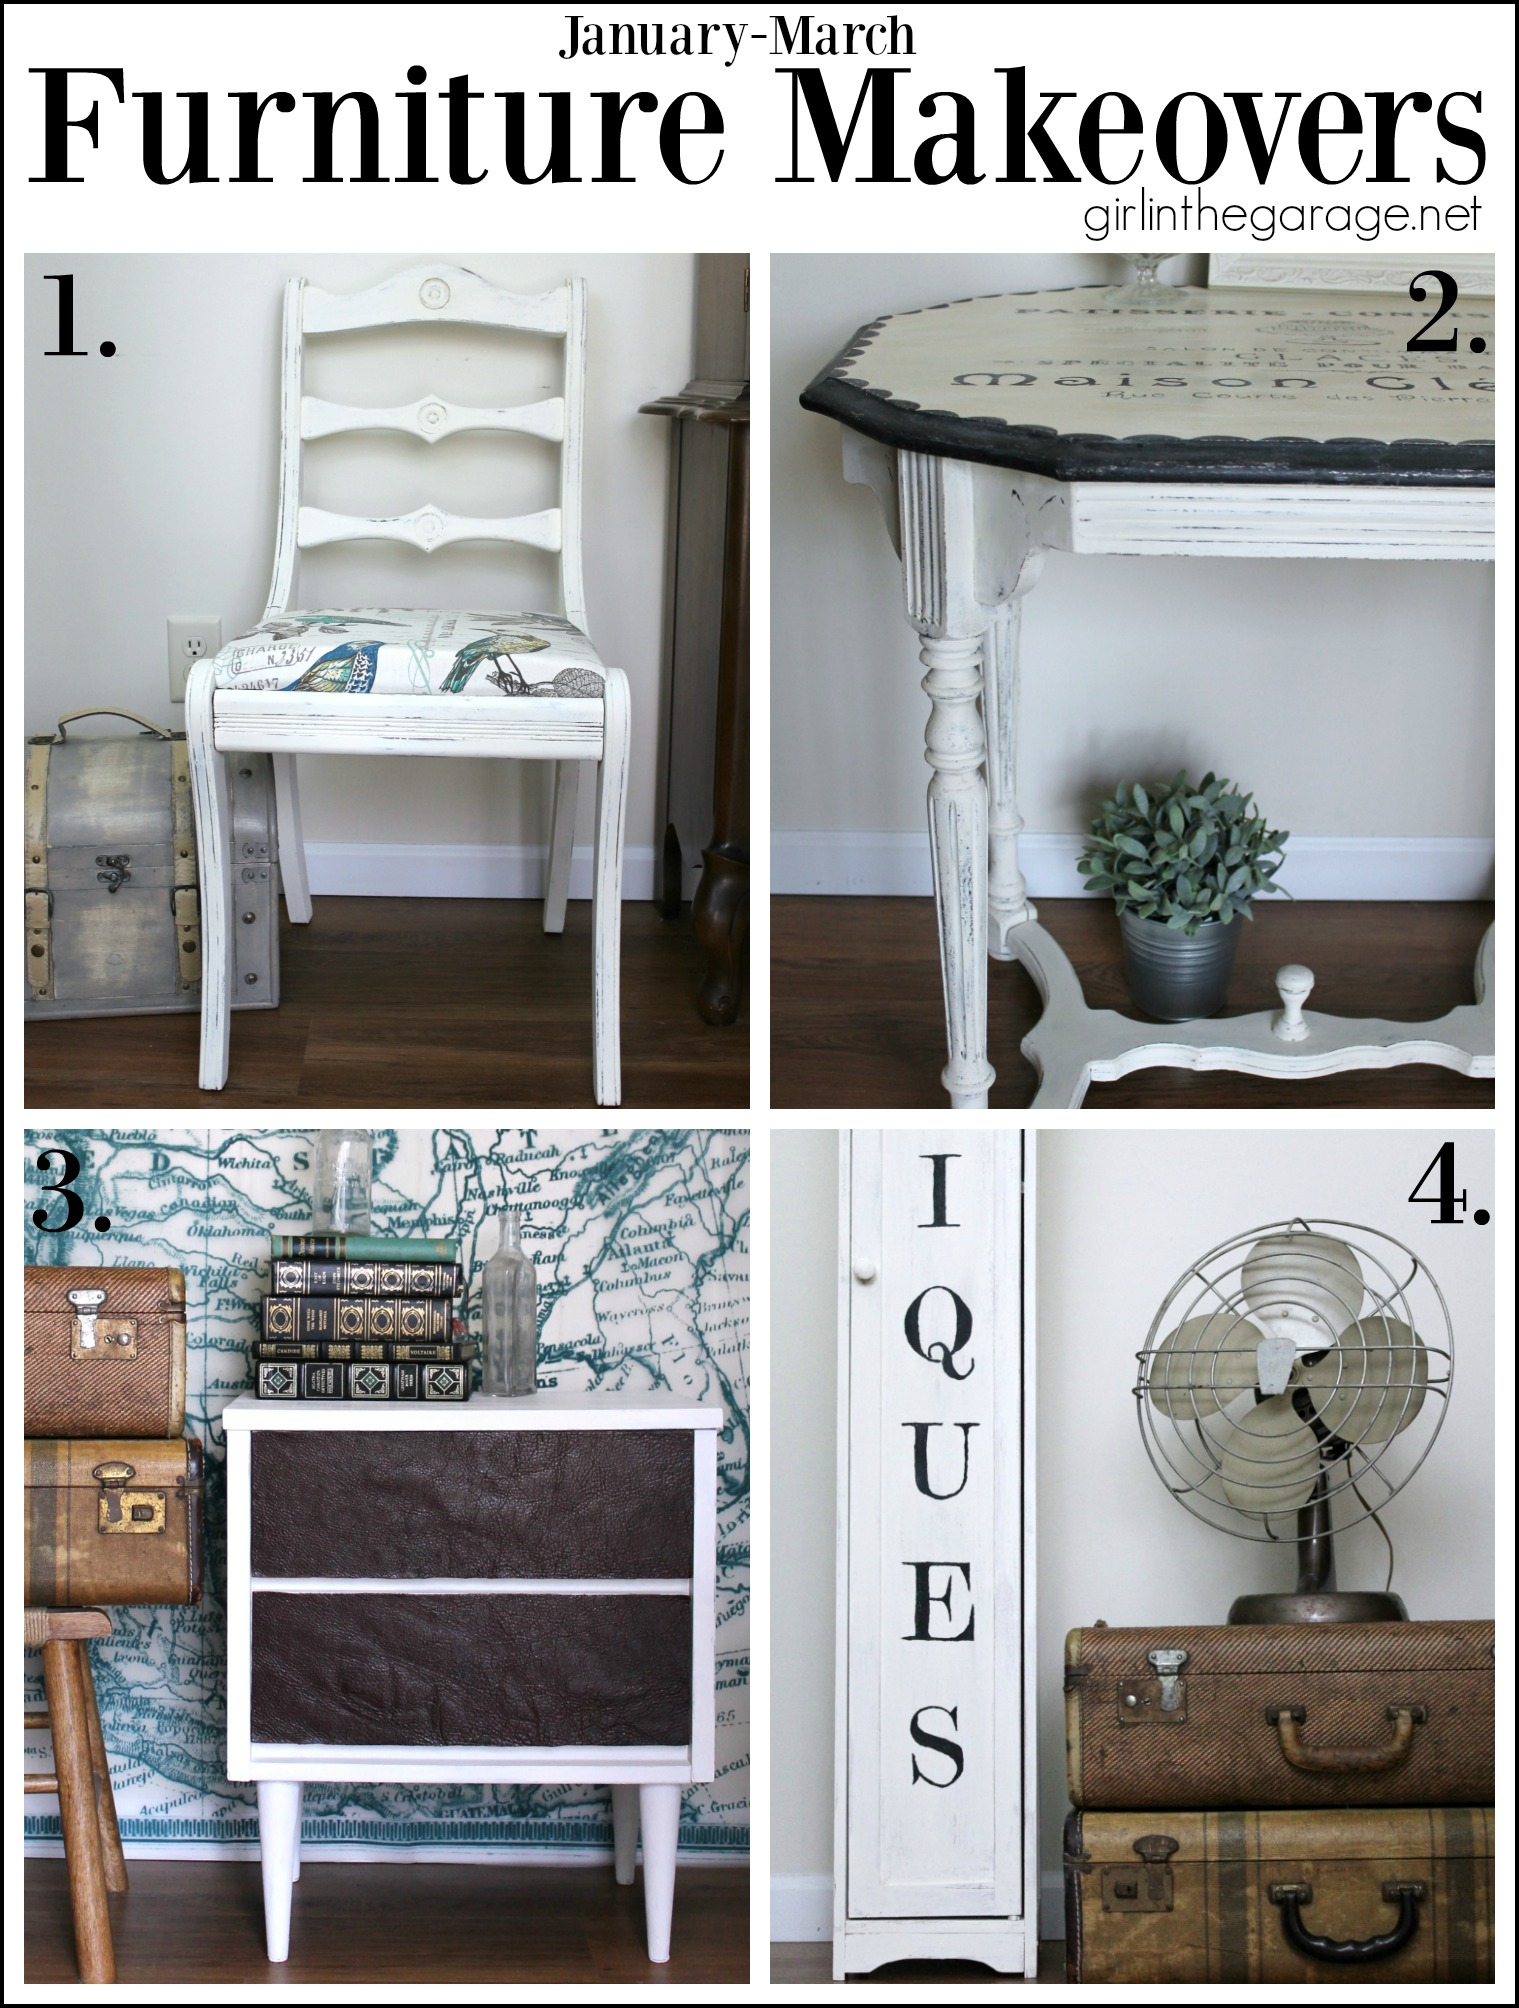 4 Furniture Makeovers - Girl in the Garage